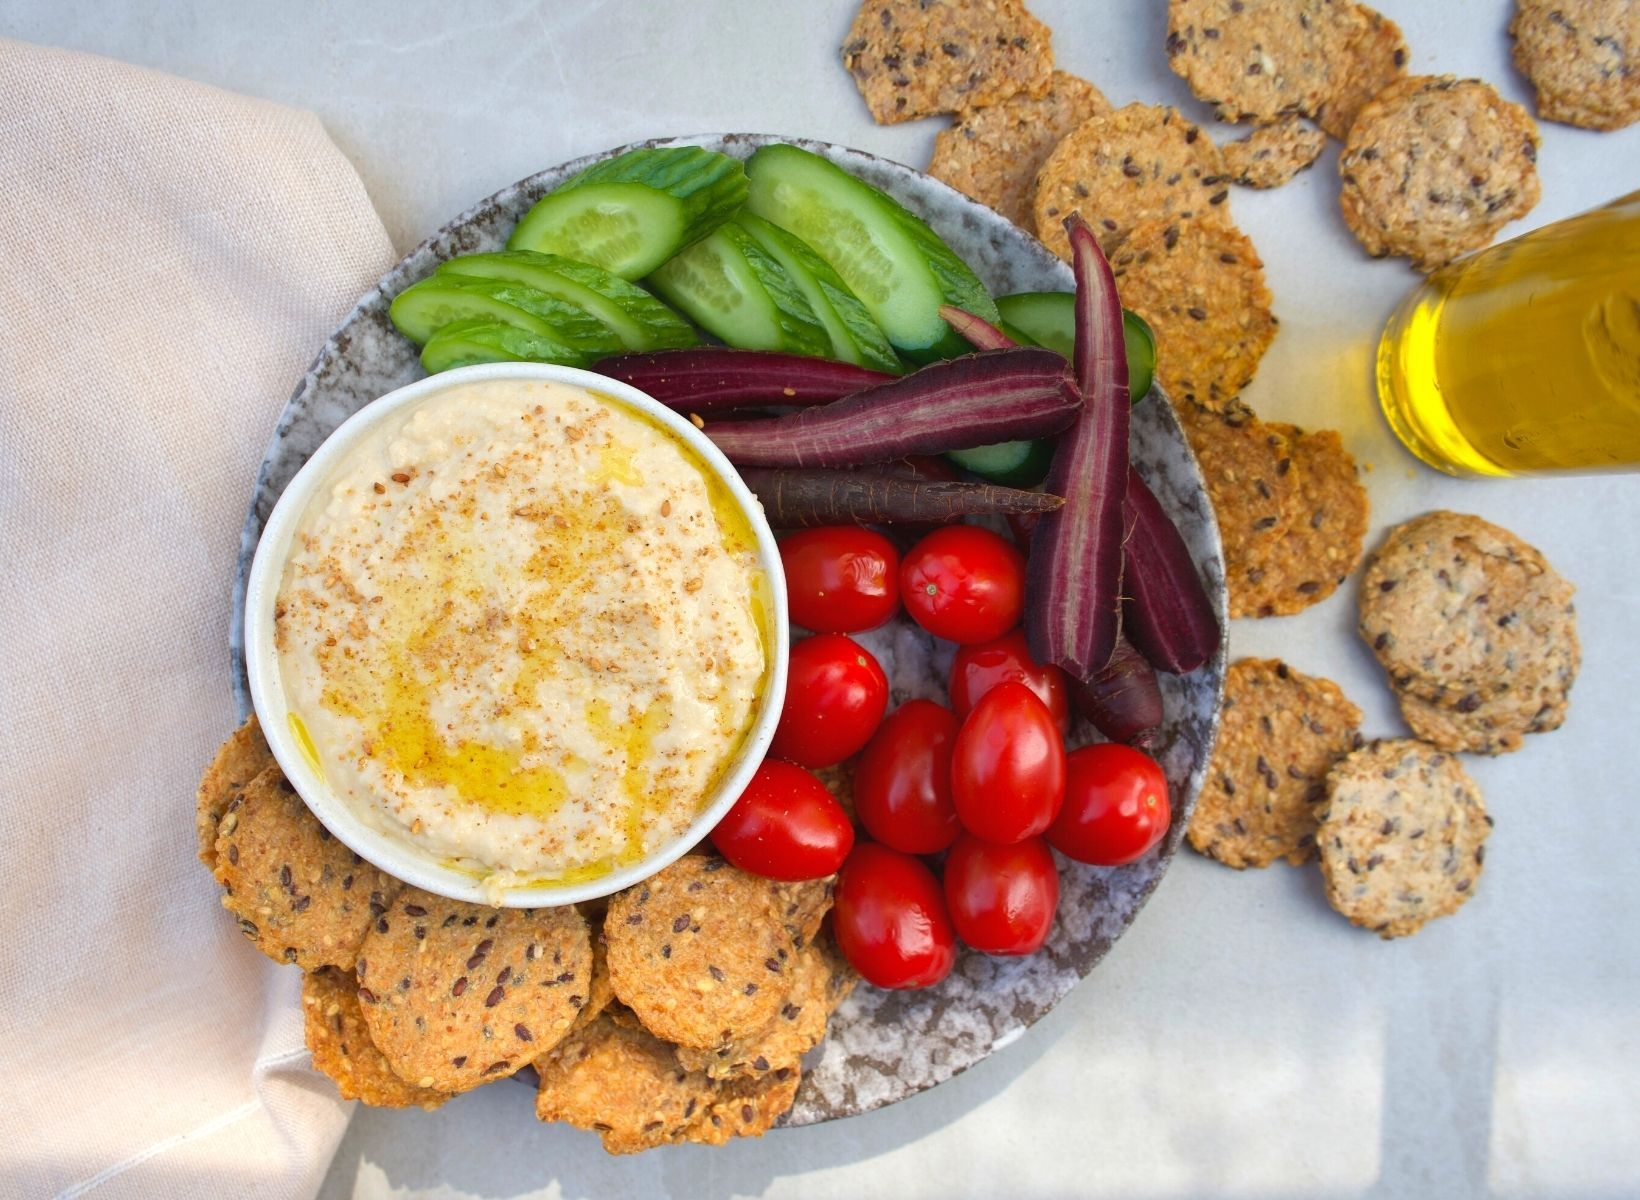 Overhead shot of a white bowl of hummus, a low-glycemic snack. A plate with sliced cucumbers, cherry tomatoes, purple carrots, and whole grain crackers are on the side